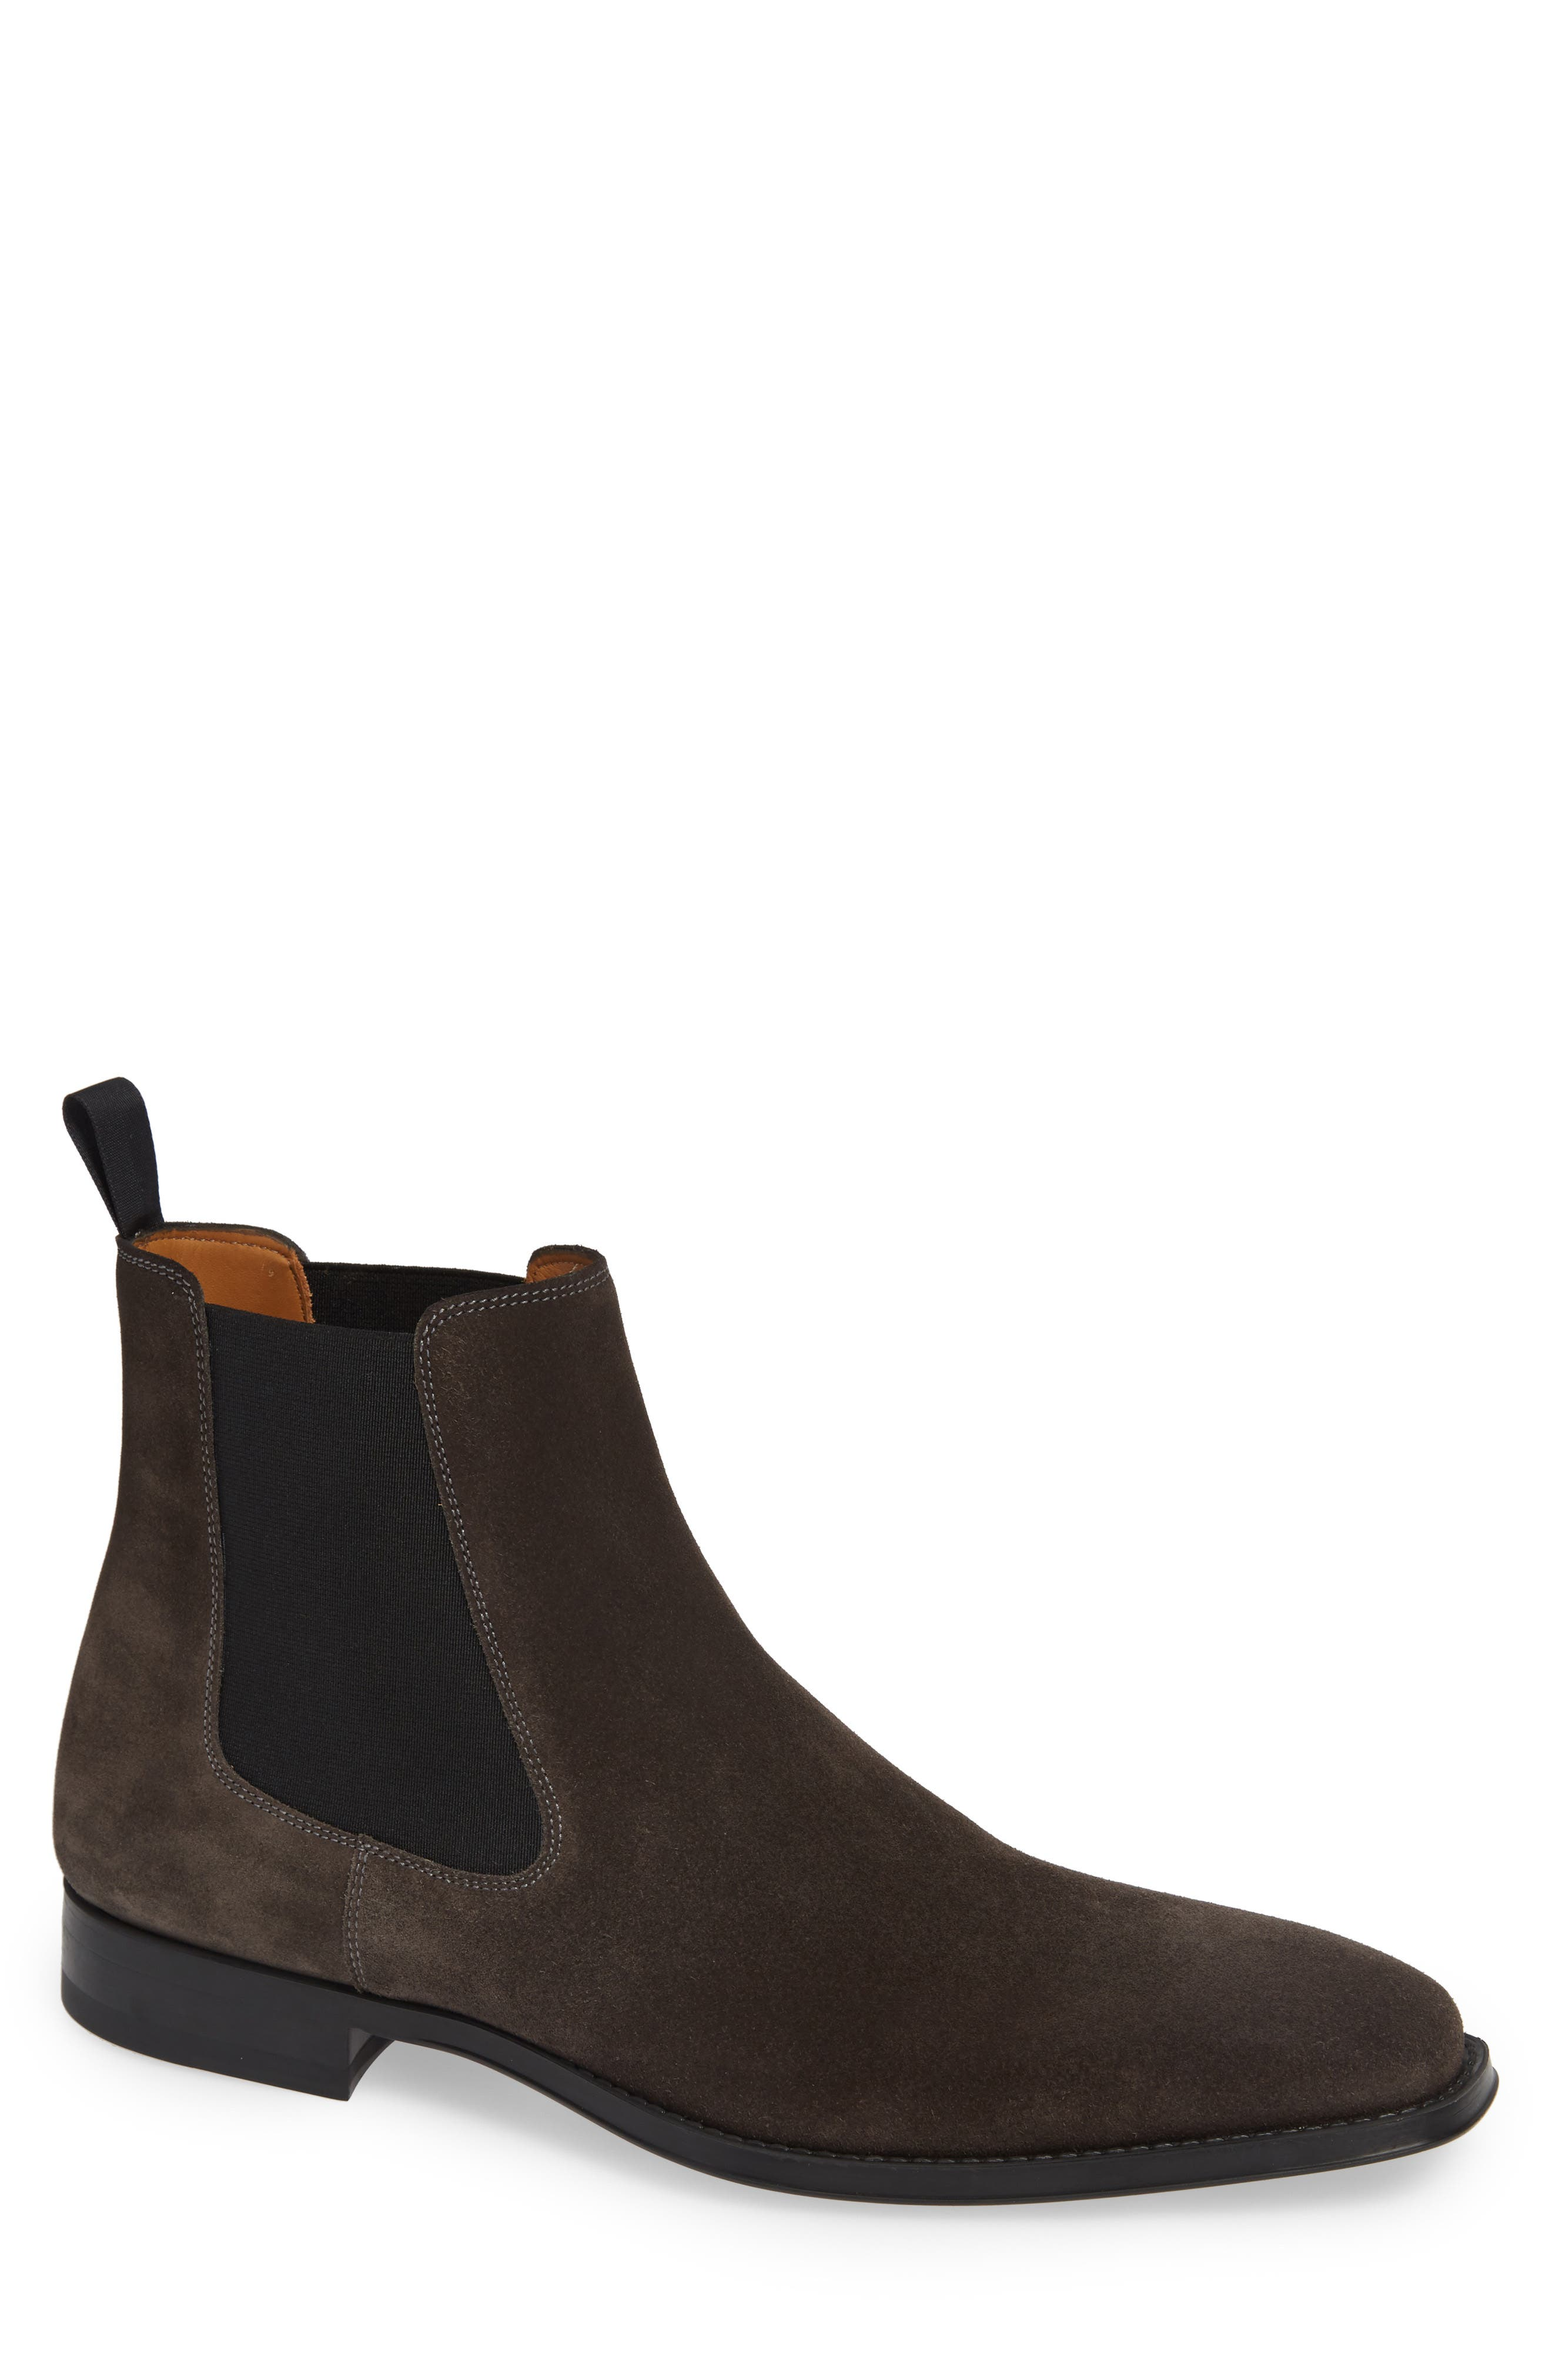 'Sean' Chelsea Boot,                             Main thumbnail 1, color,                             GREY LEATHER